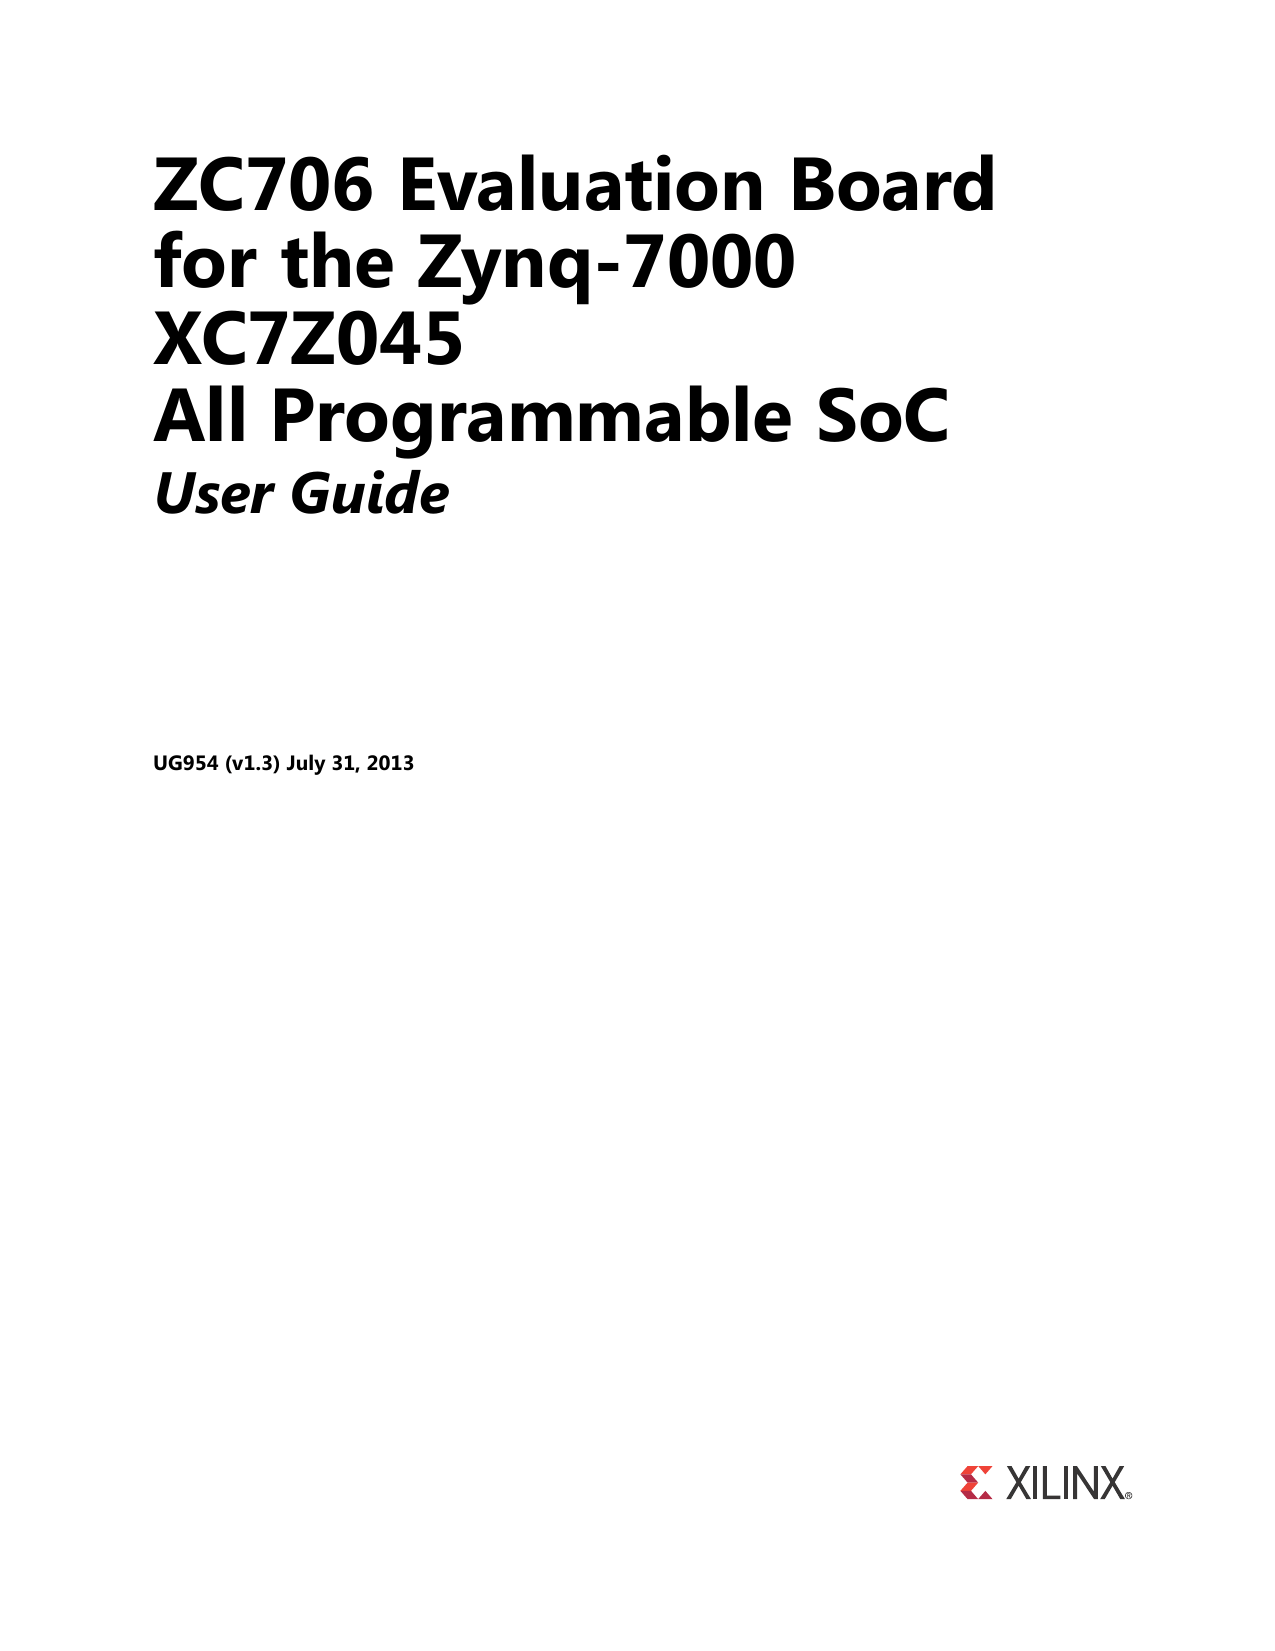 Xilinx UG954 ZC706 Evaluation Board for the Zynq